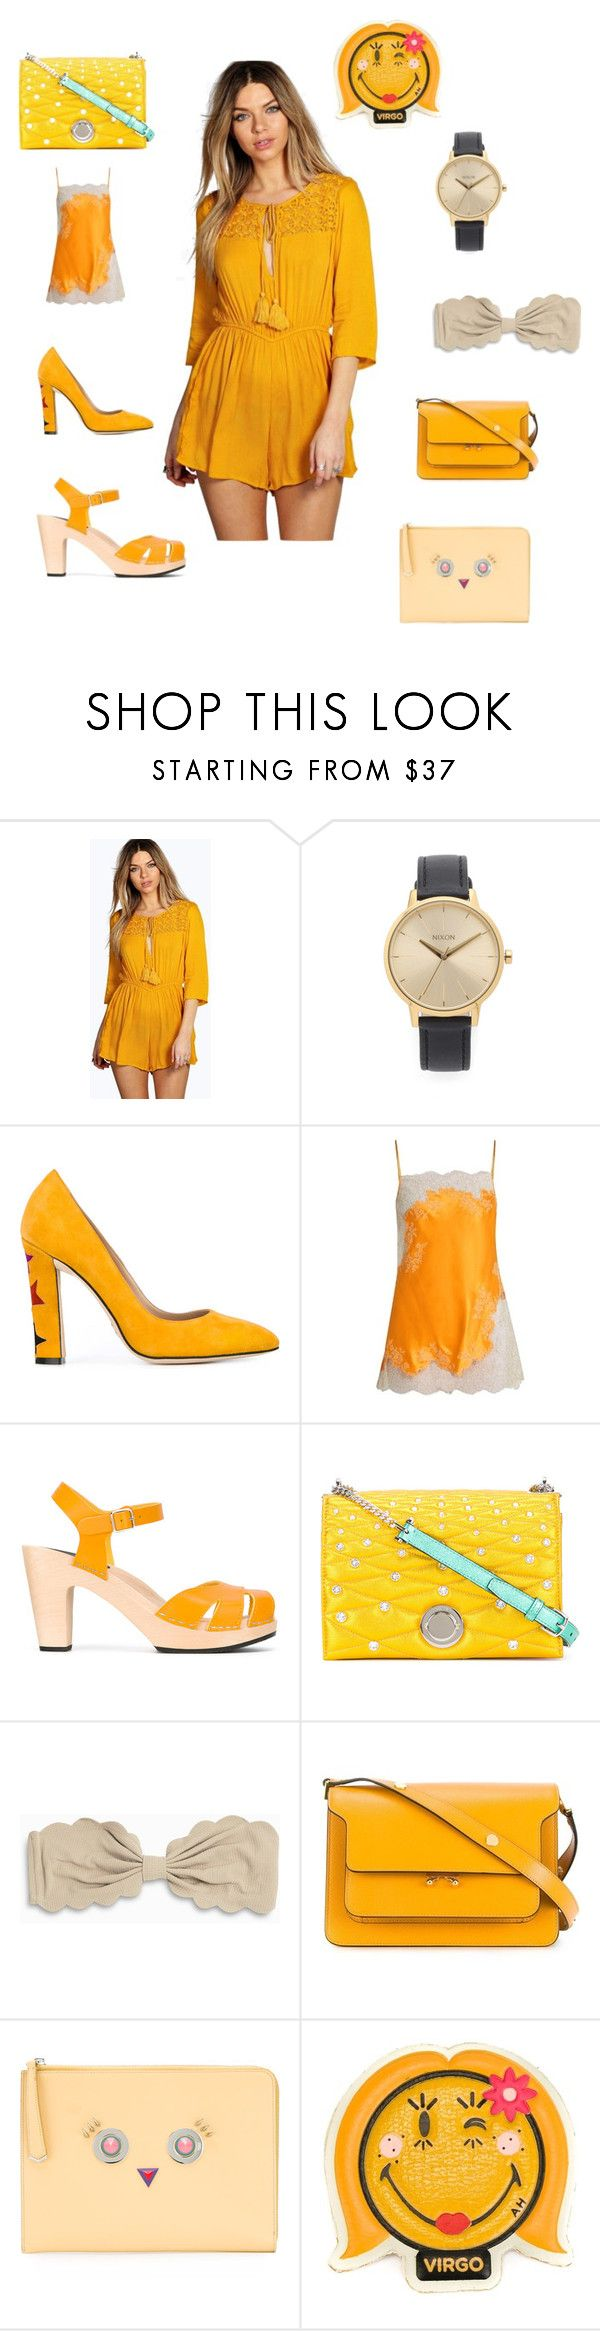 """Looking awesome"" by emmamegan-5678 ❤ liked on Polyvore featuring Boohoo, Nixon, Paula Cademartori, Carine Gilson, Swedish Hasbeens, Bally, Marysia Swim, Marni, Fendi and Anya Hindmarch"